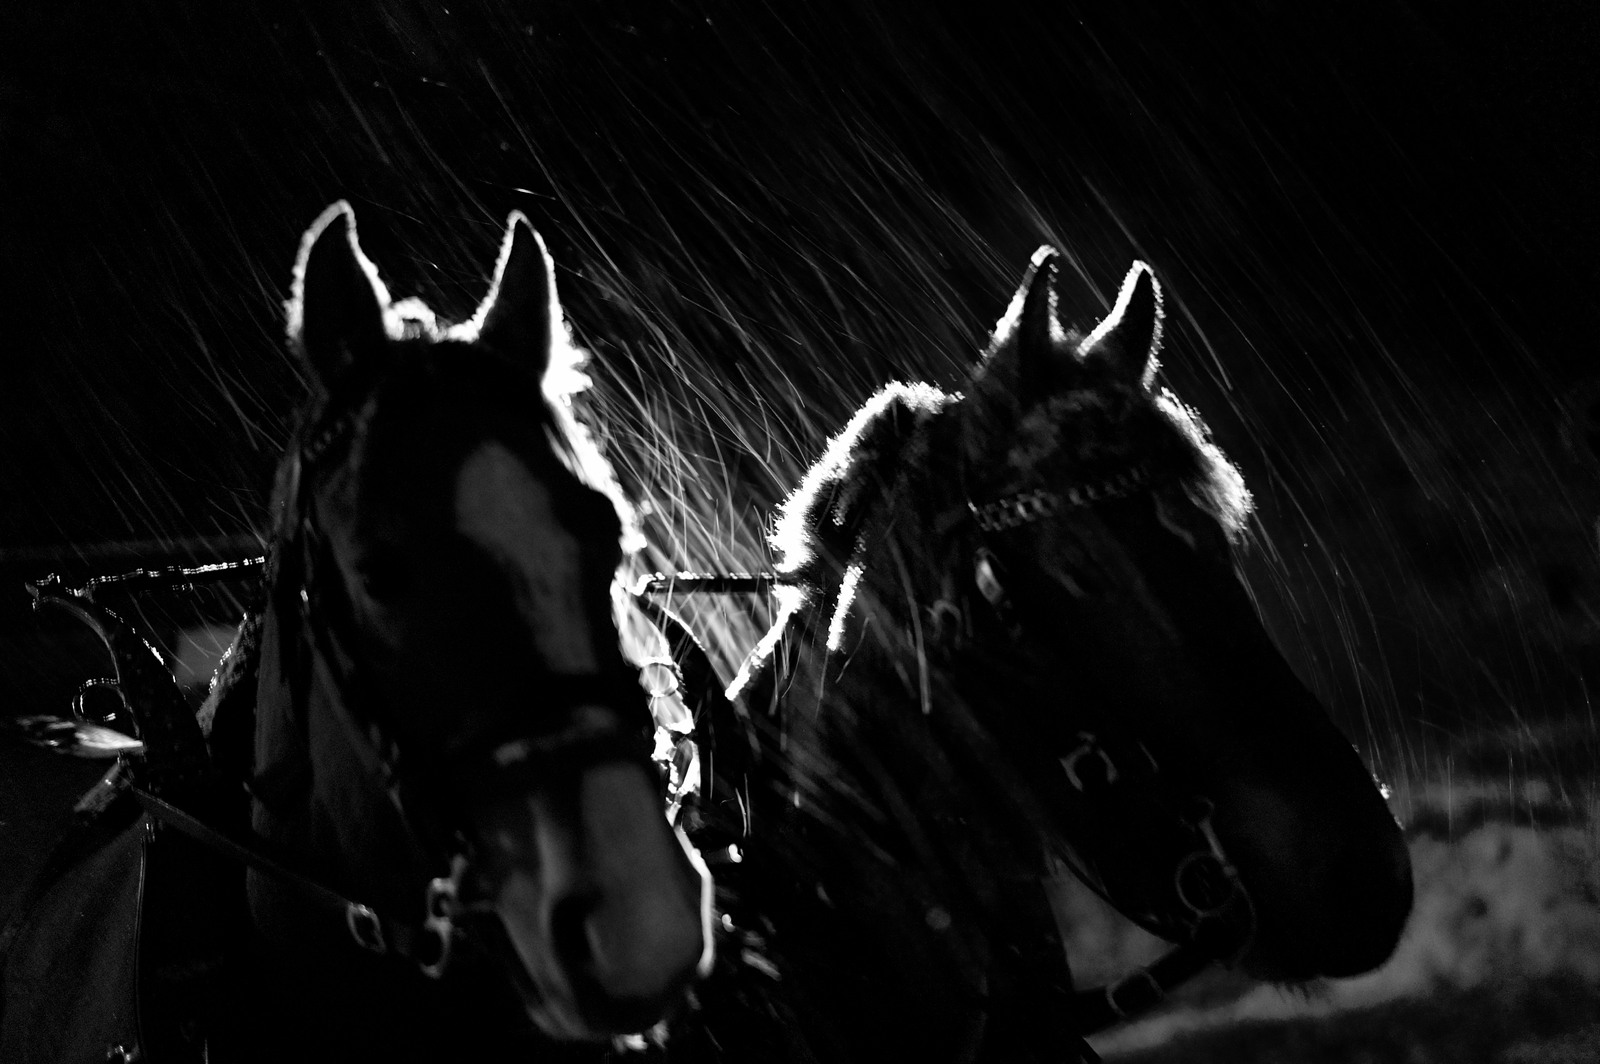 Horses in the Snowstorm